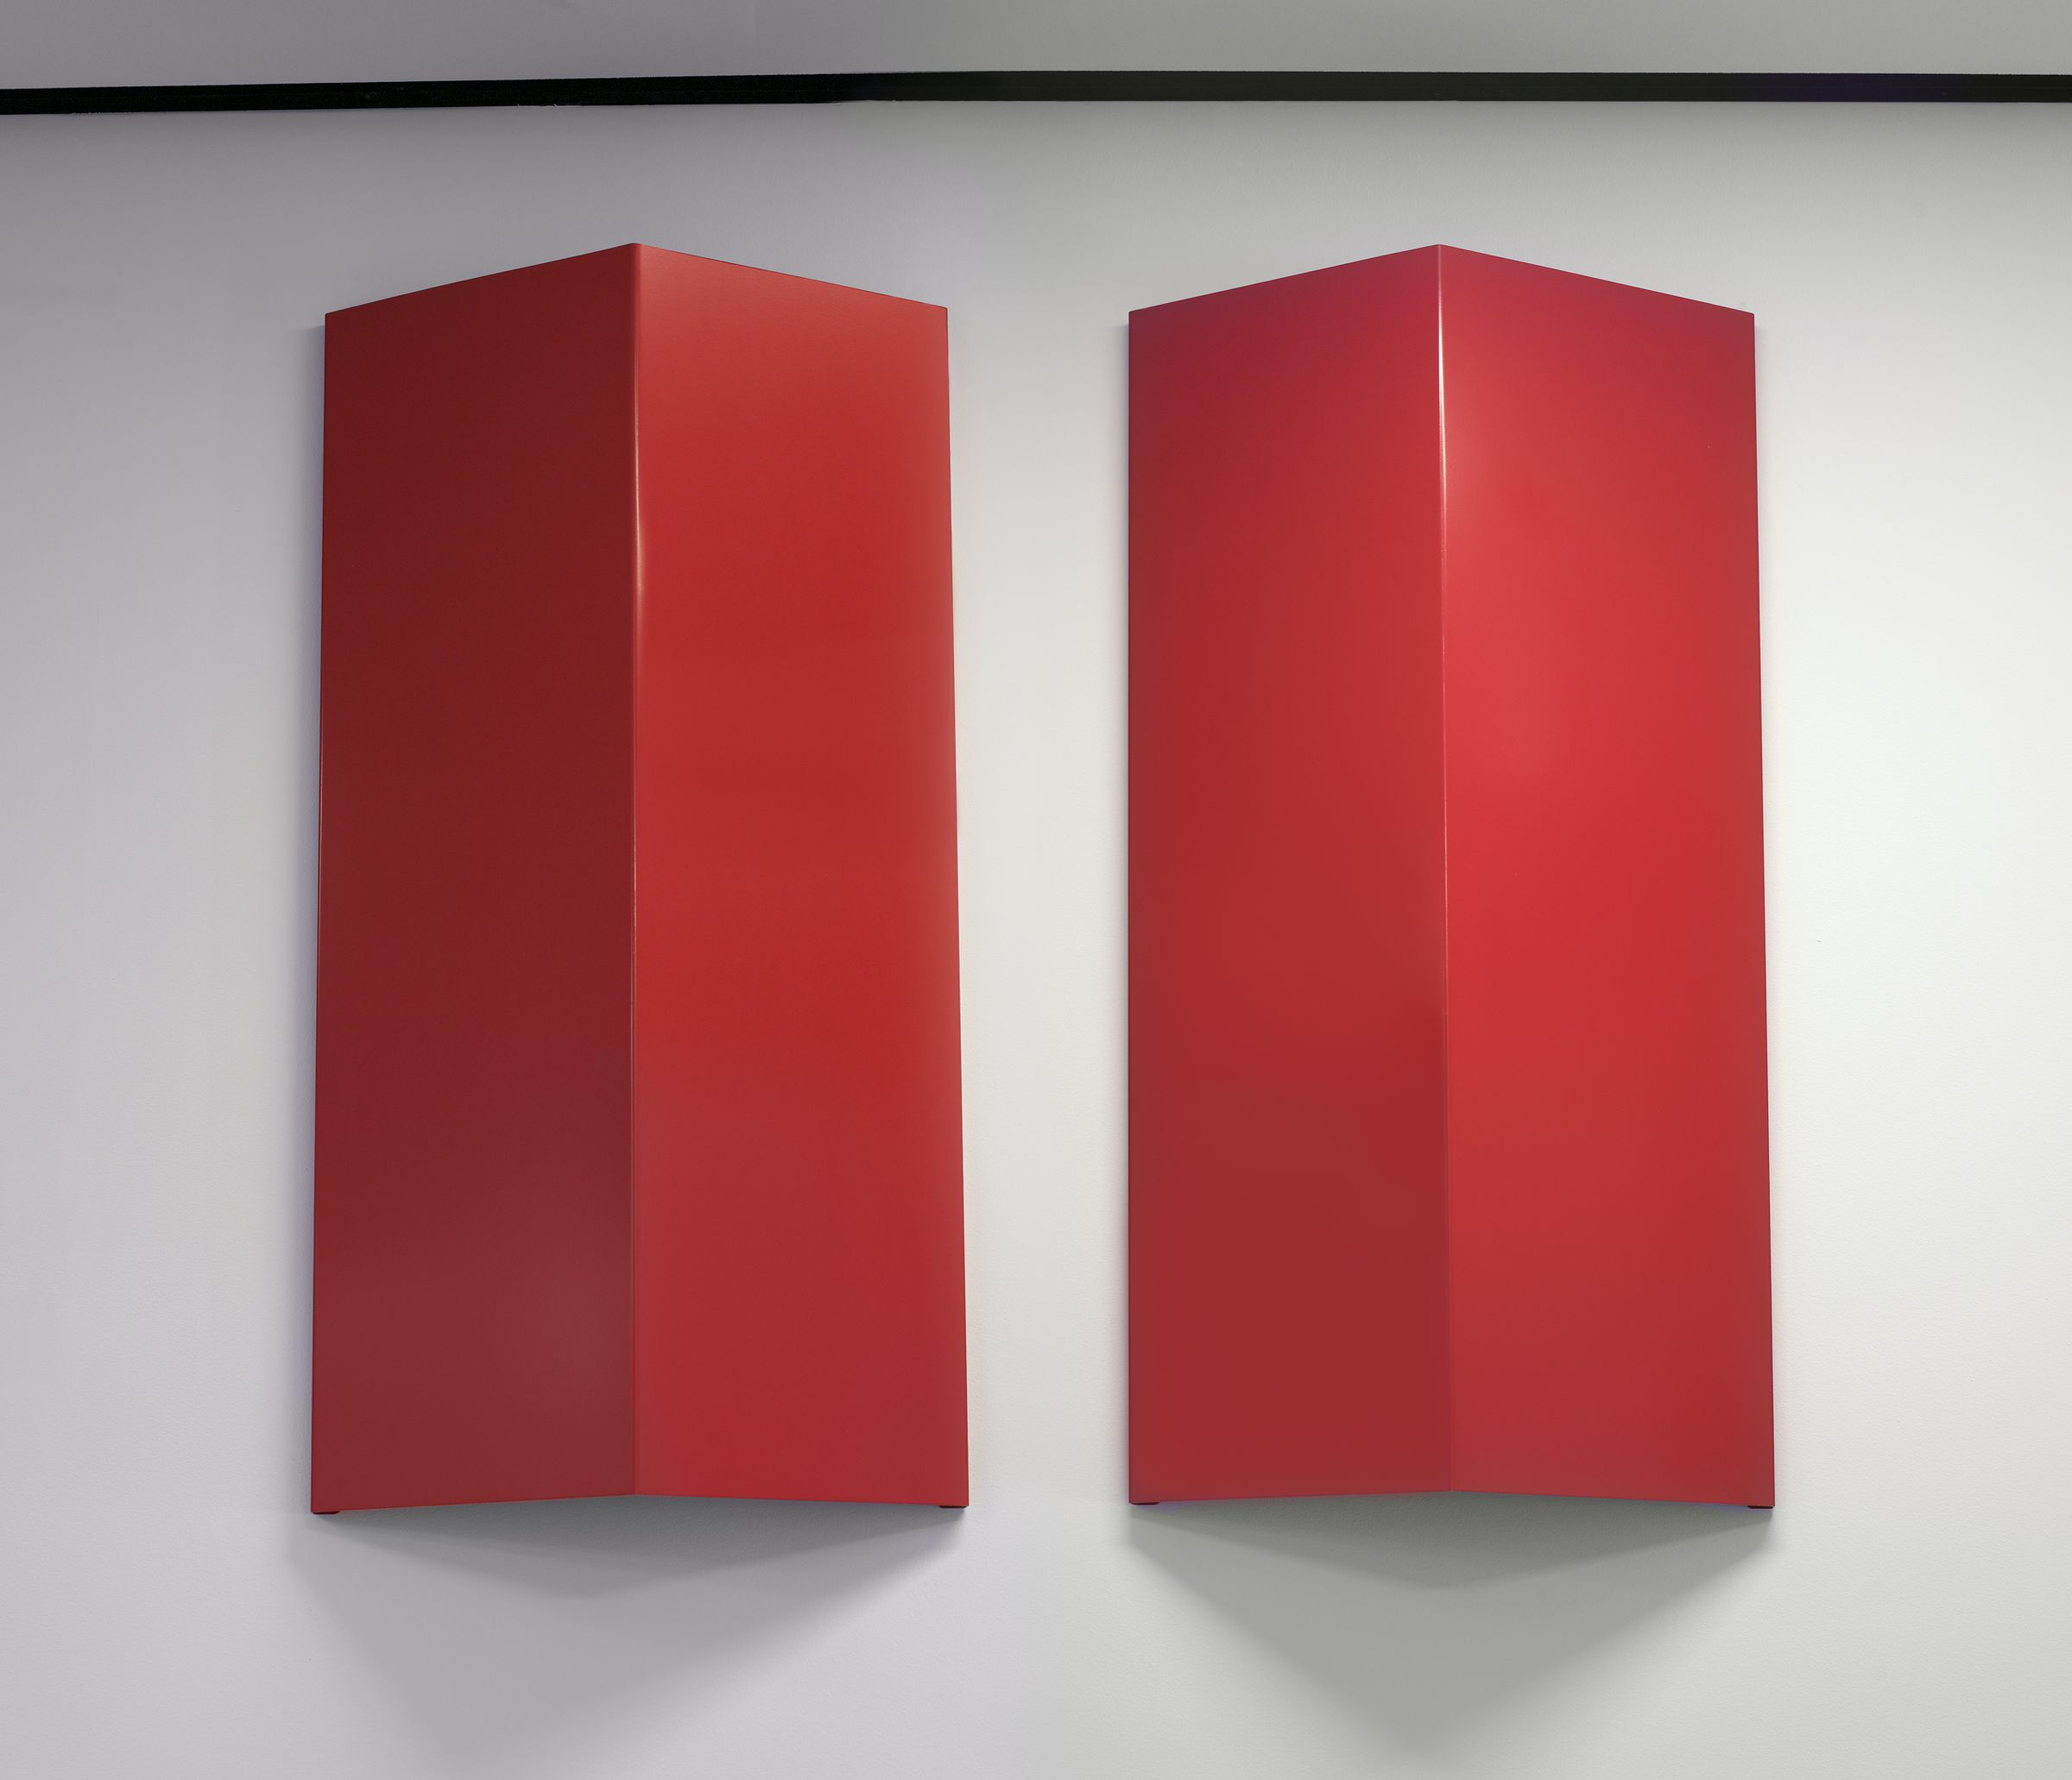 Two identical, bright red-painted aluminum sheets are mounted on a white wall. Each of the rectangular sheets is folded convexly along its center and oriented vertically.